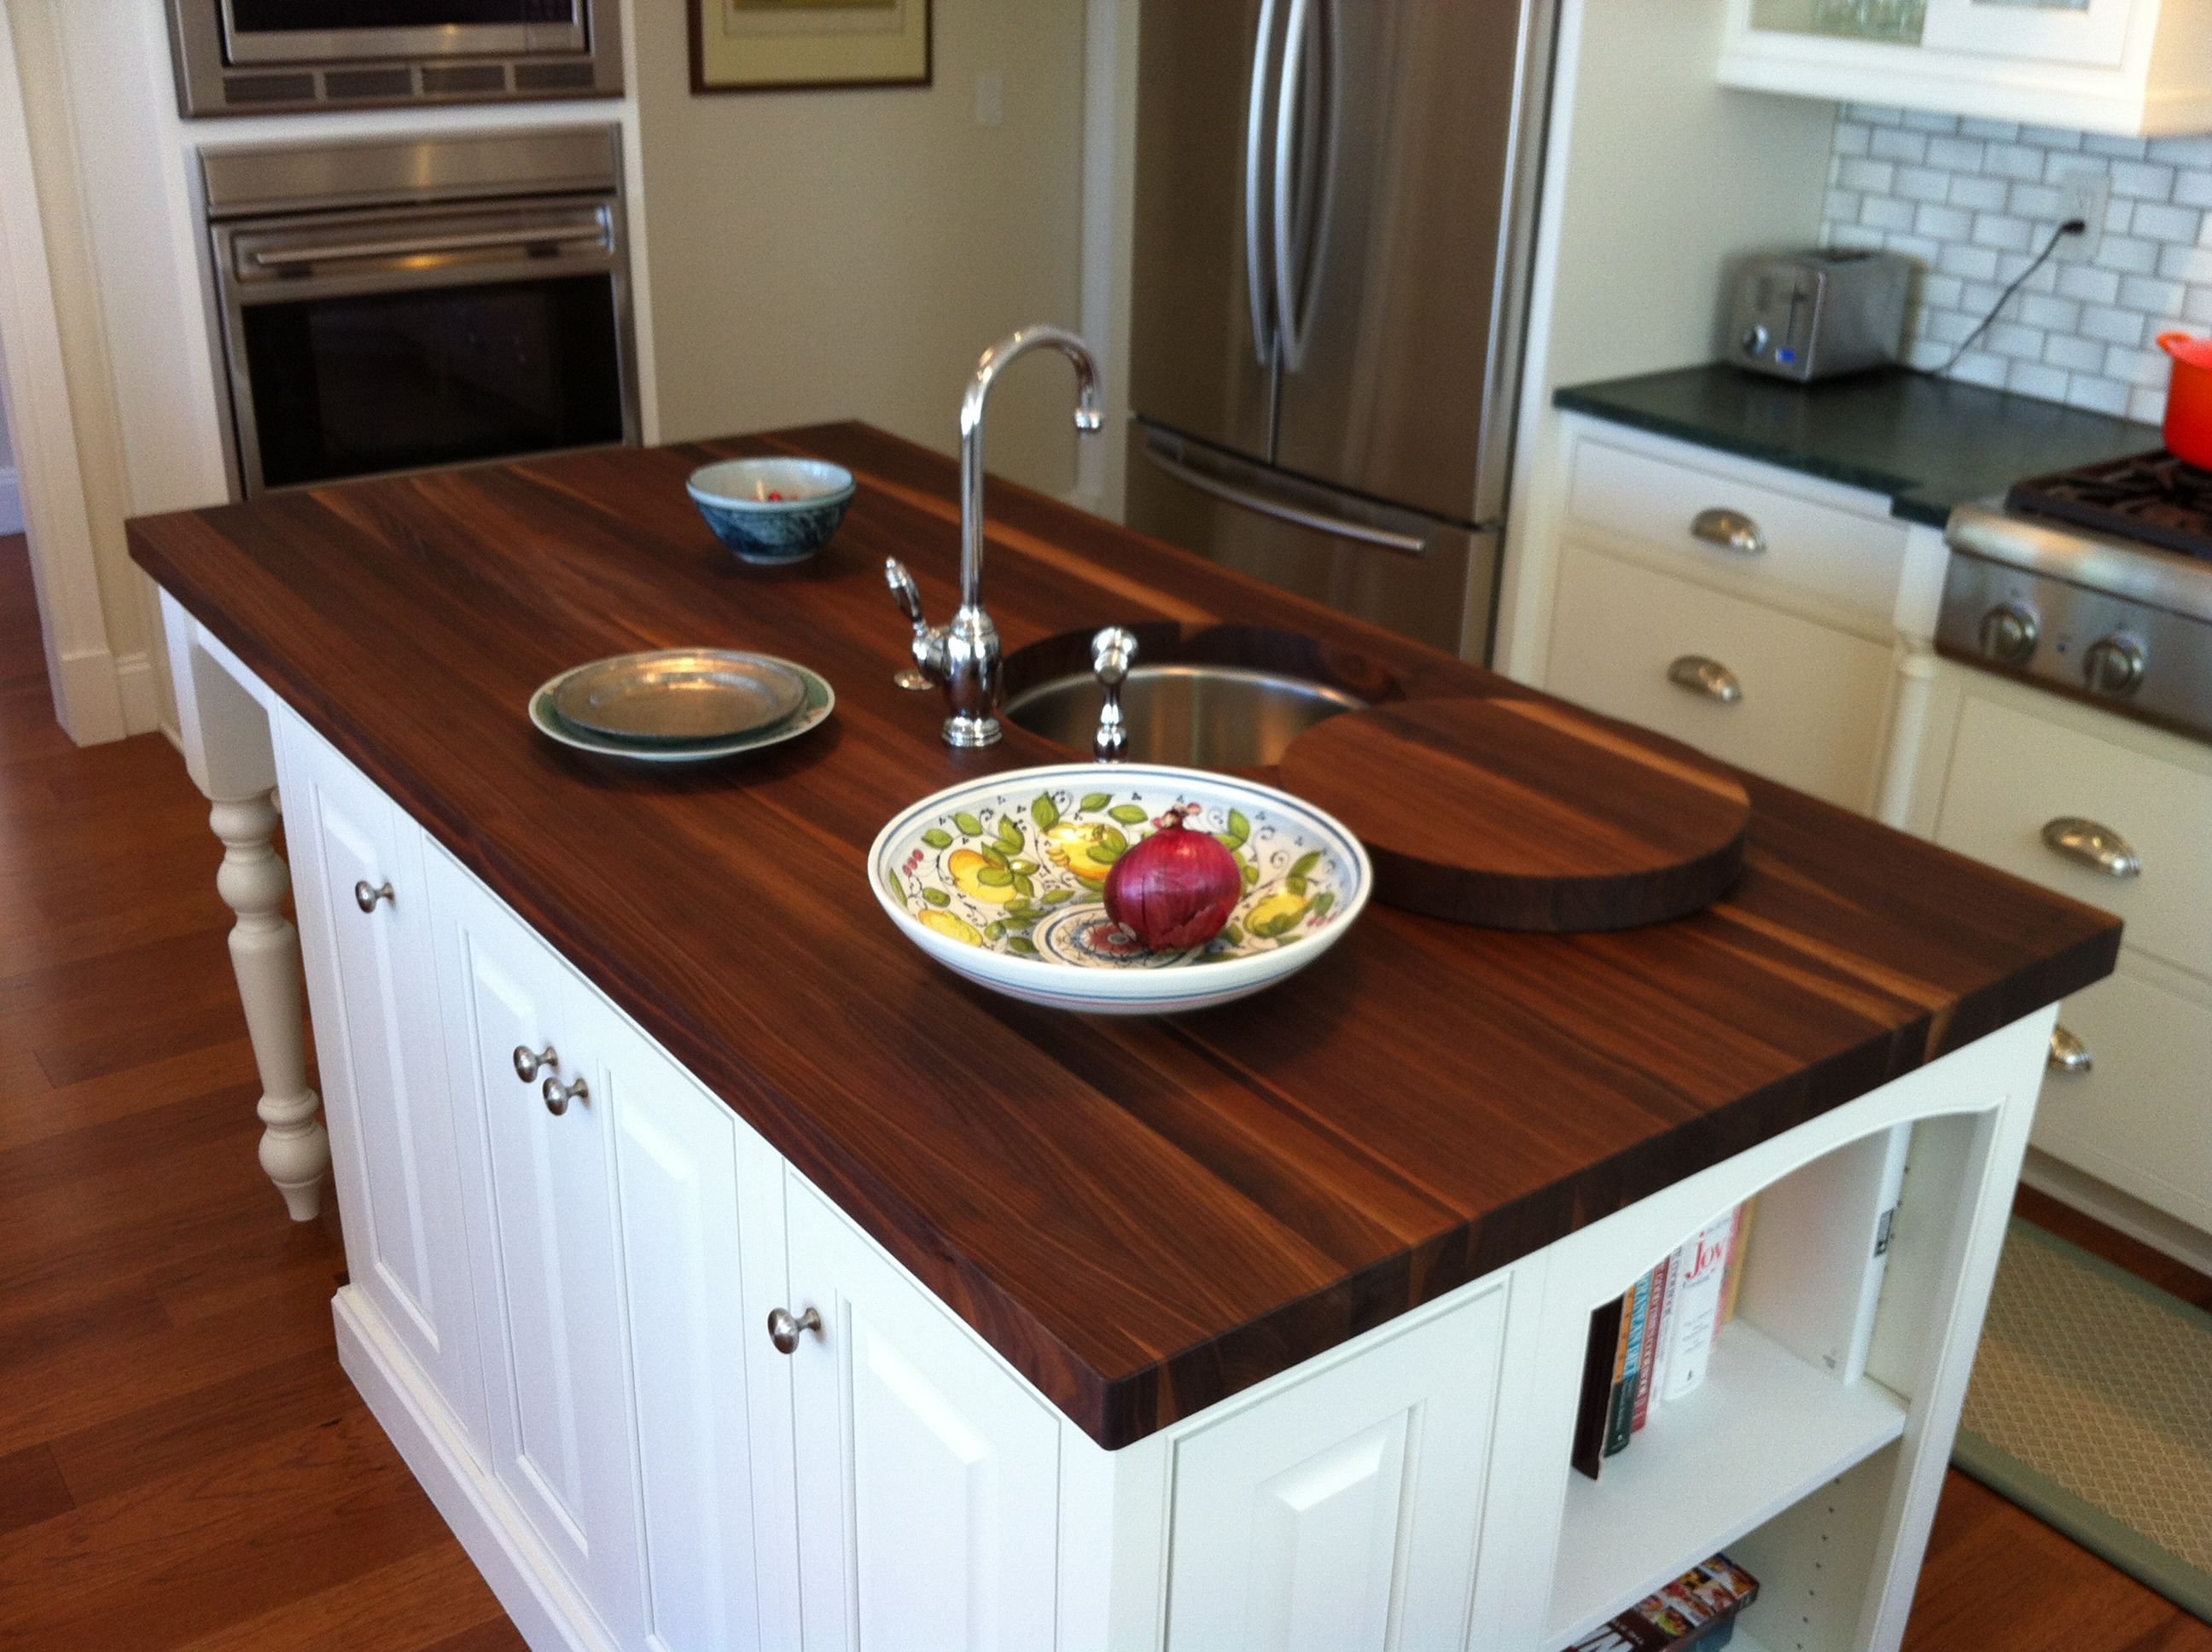 Uncategorized Soapstone Kitchen Countertops charming and classy wooden kitchen countertops islands countertops